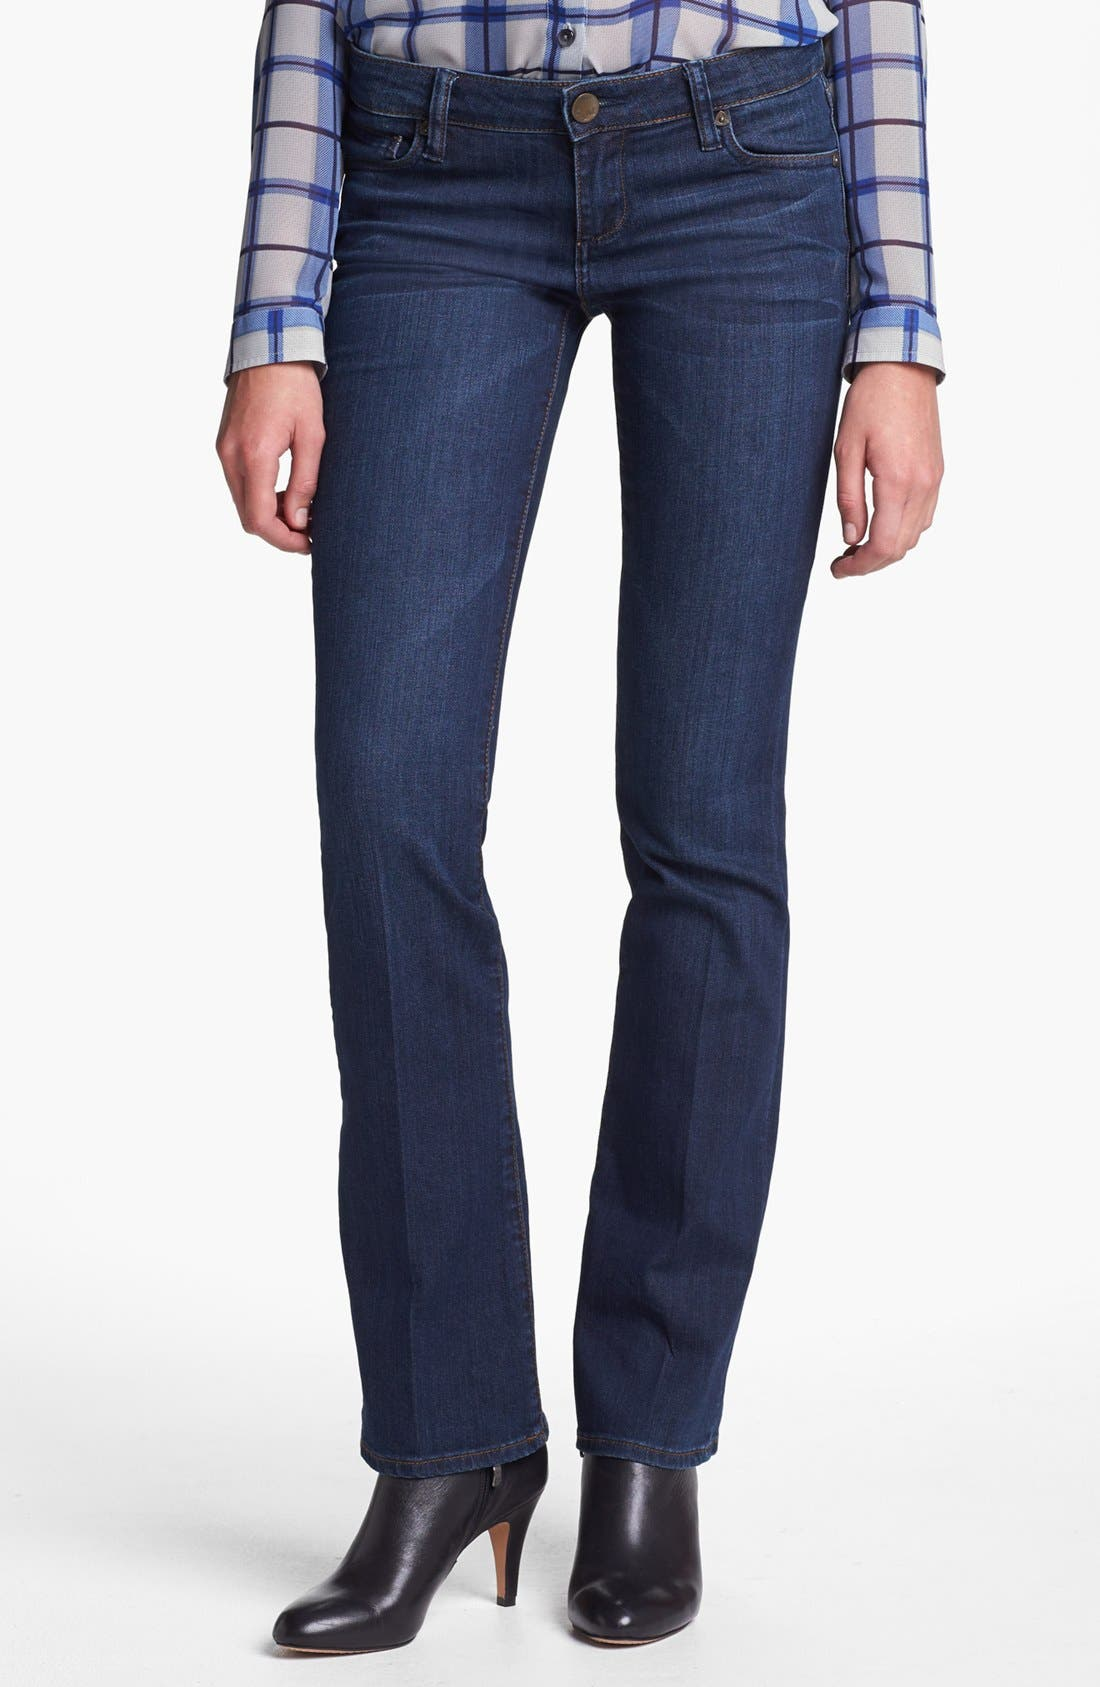 Alternate Image 1 Selected - KUT from the Kloth 'Farrah' Mini Bootcut Jeans (Whim) (Regular & Petite)